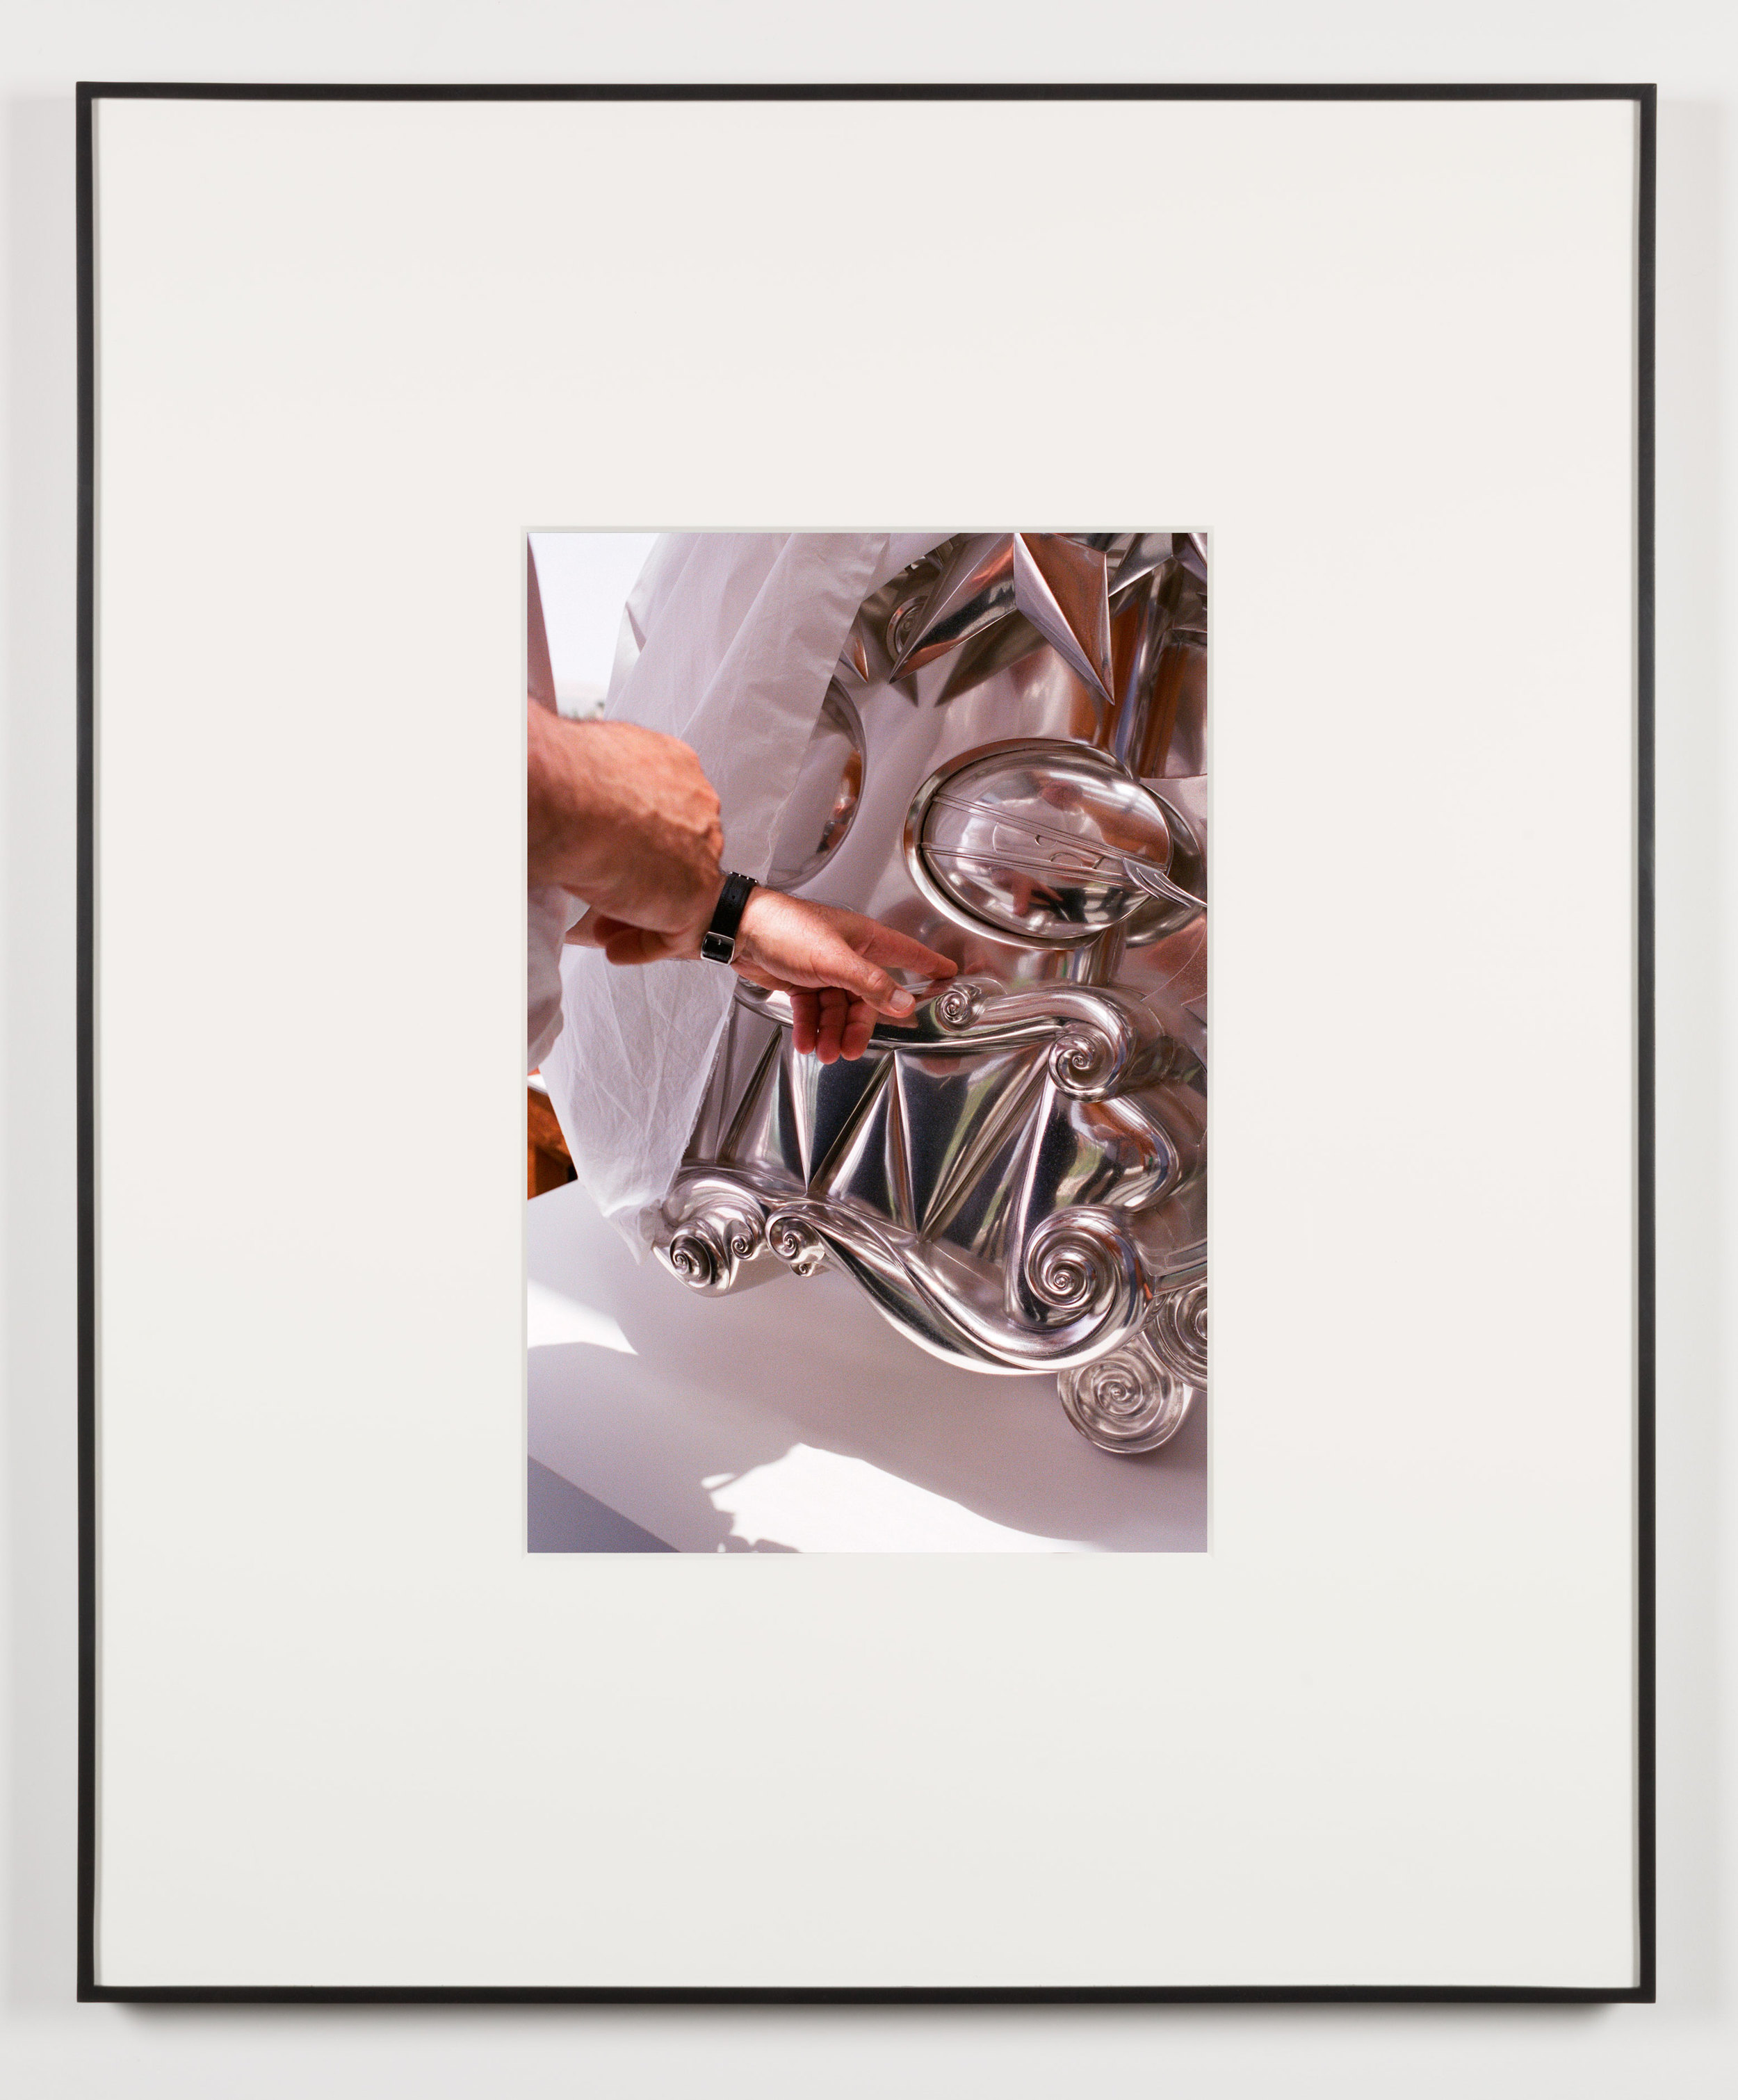 Alphabet der Leidenschaft (Beirut, Lebanon, June 1, 2013)    2014   Chromogenic print  20 x 13 1/2 inches   Selected Bodies of Work, 2014